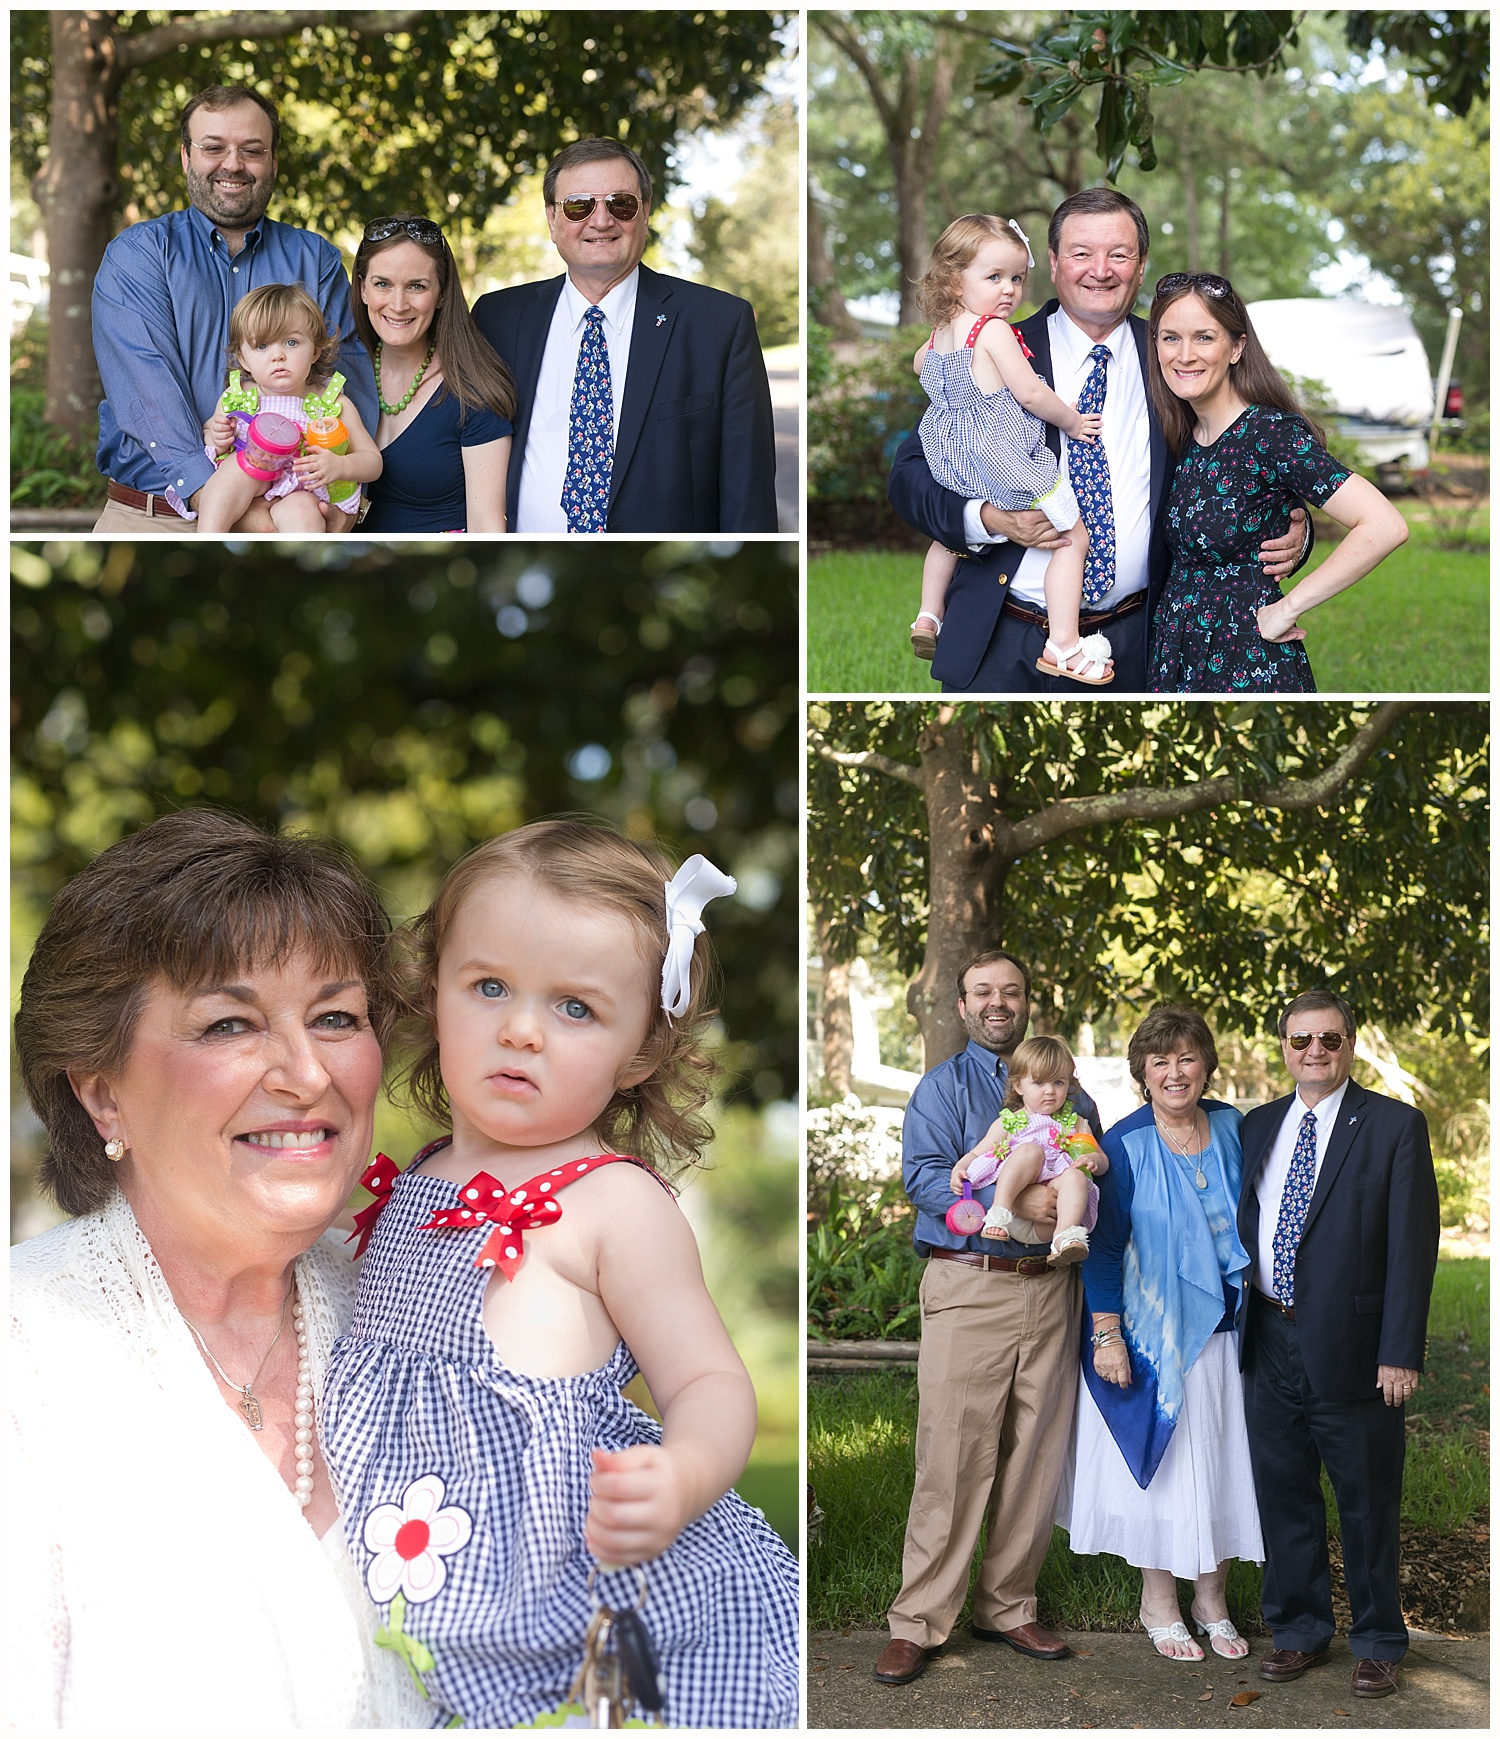 toddler girl with parents and grandparents in Sunday best